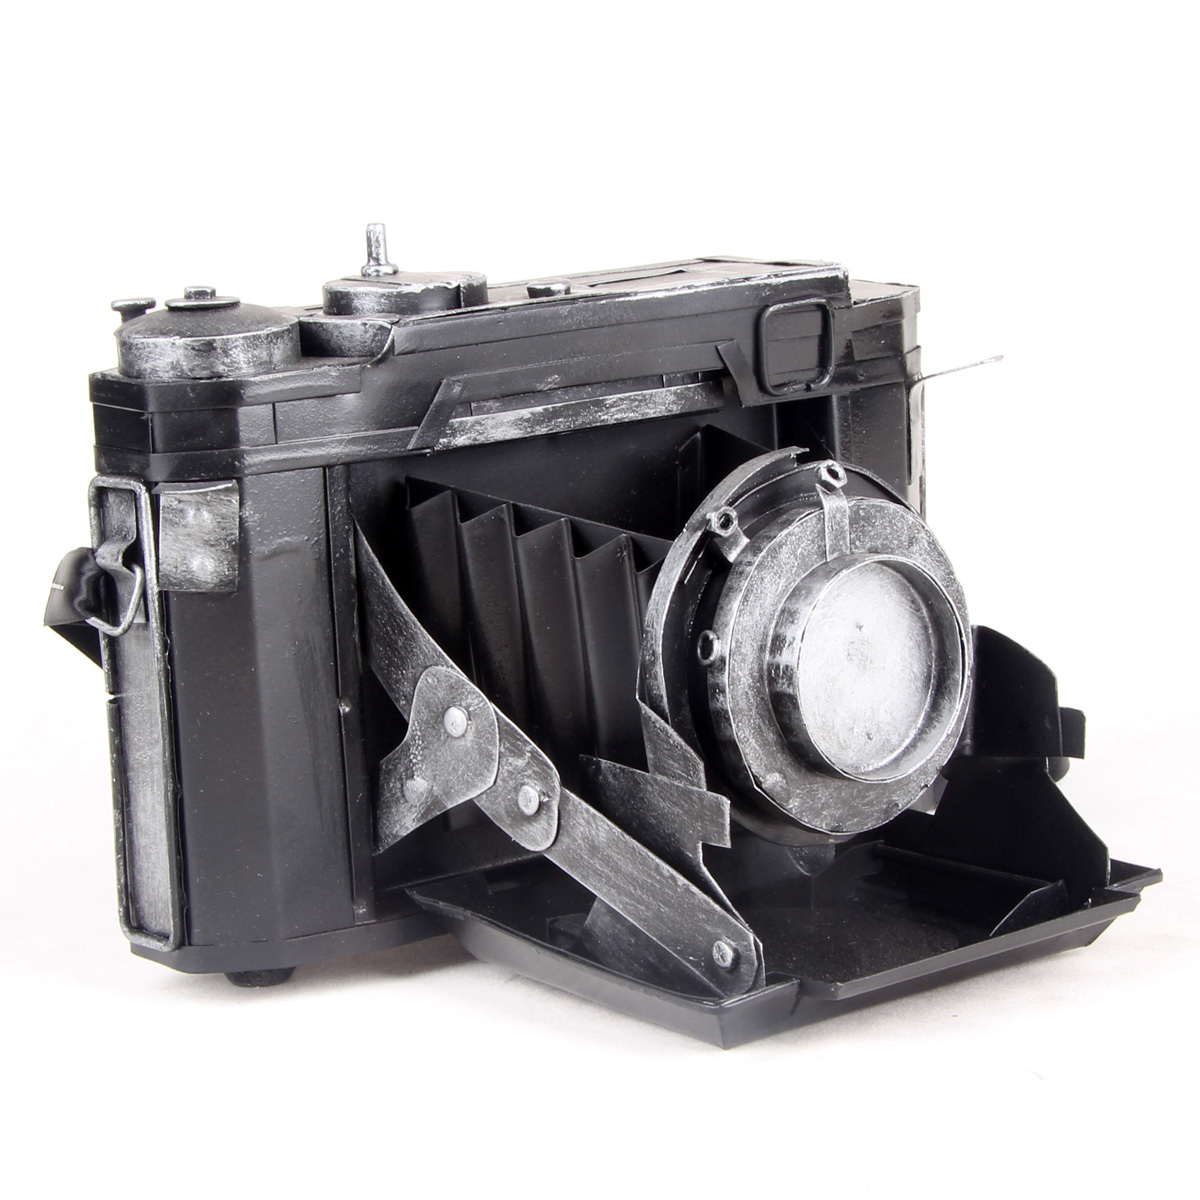 Wedding clothes decoration props vintage camera furnishings antique camera telephone Home decorations Gifts crafts(China (Mainland))